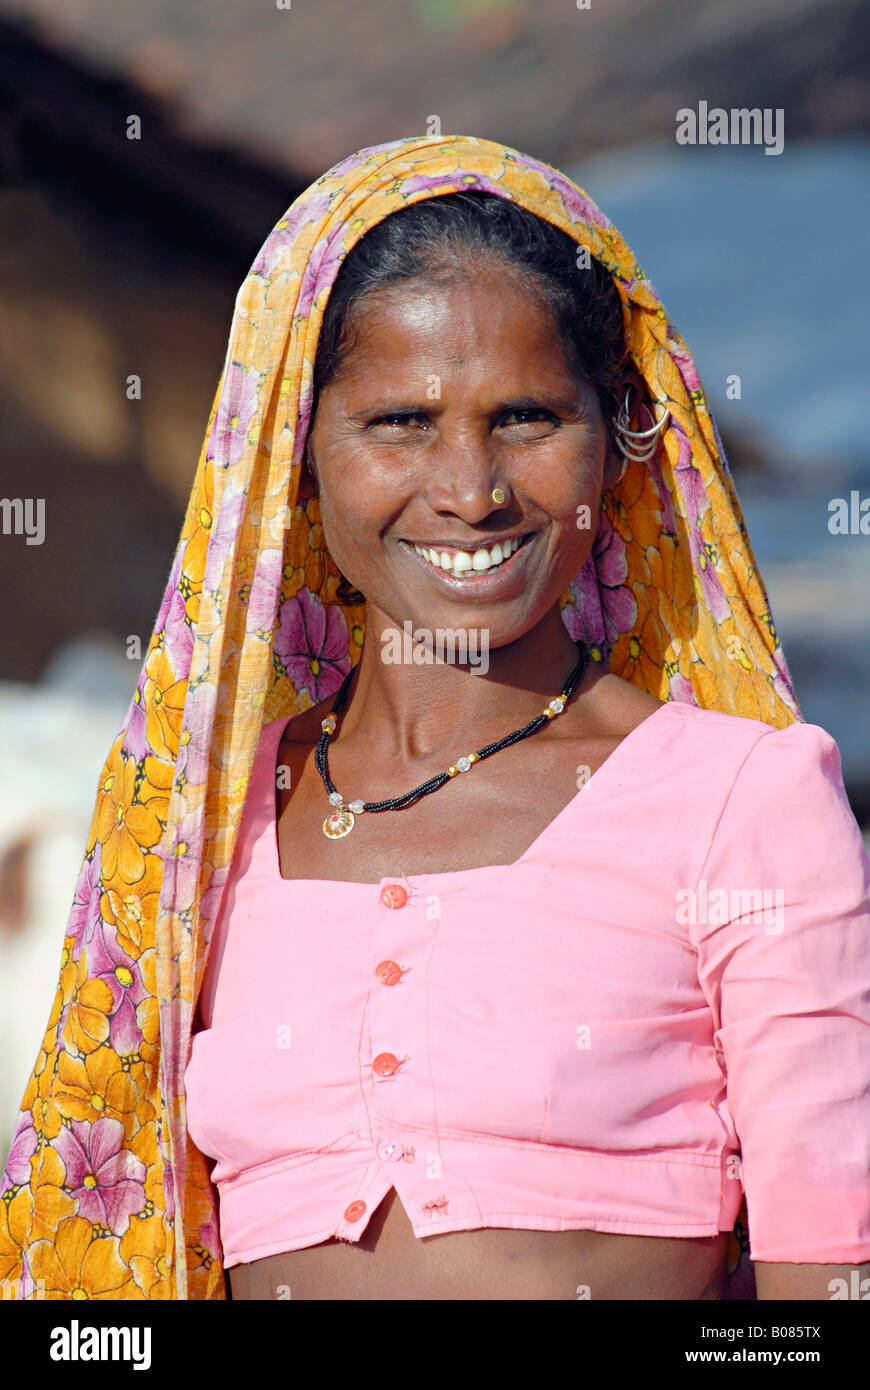 Rural Indian Woman Class Stock Photos & Rural Indian Woman Class